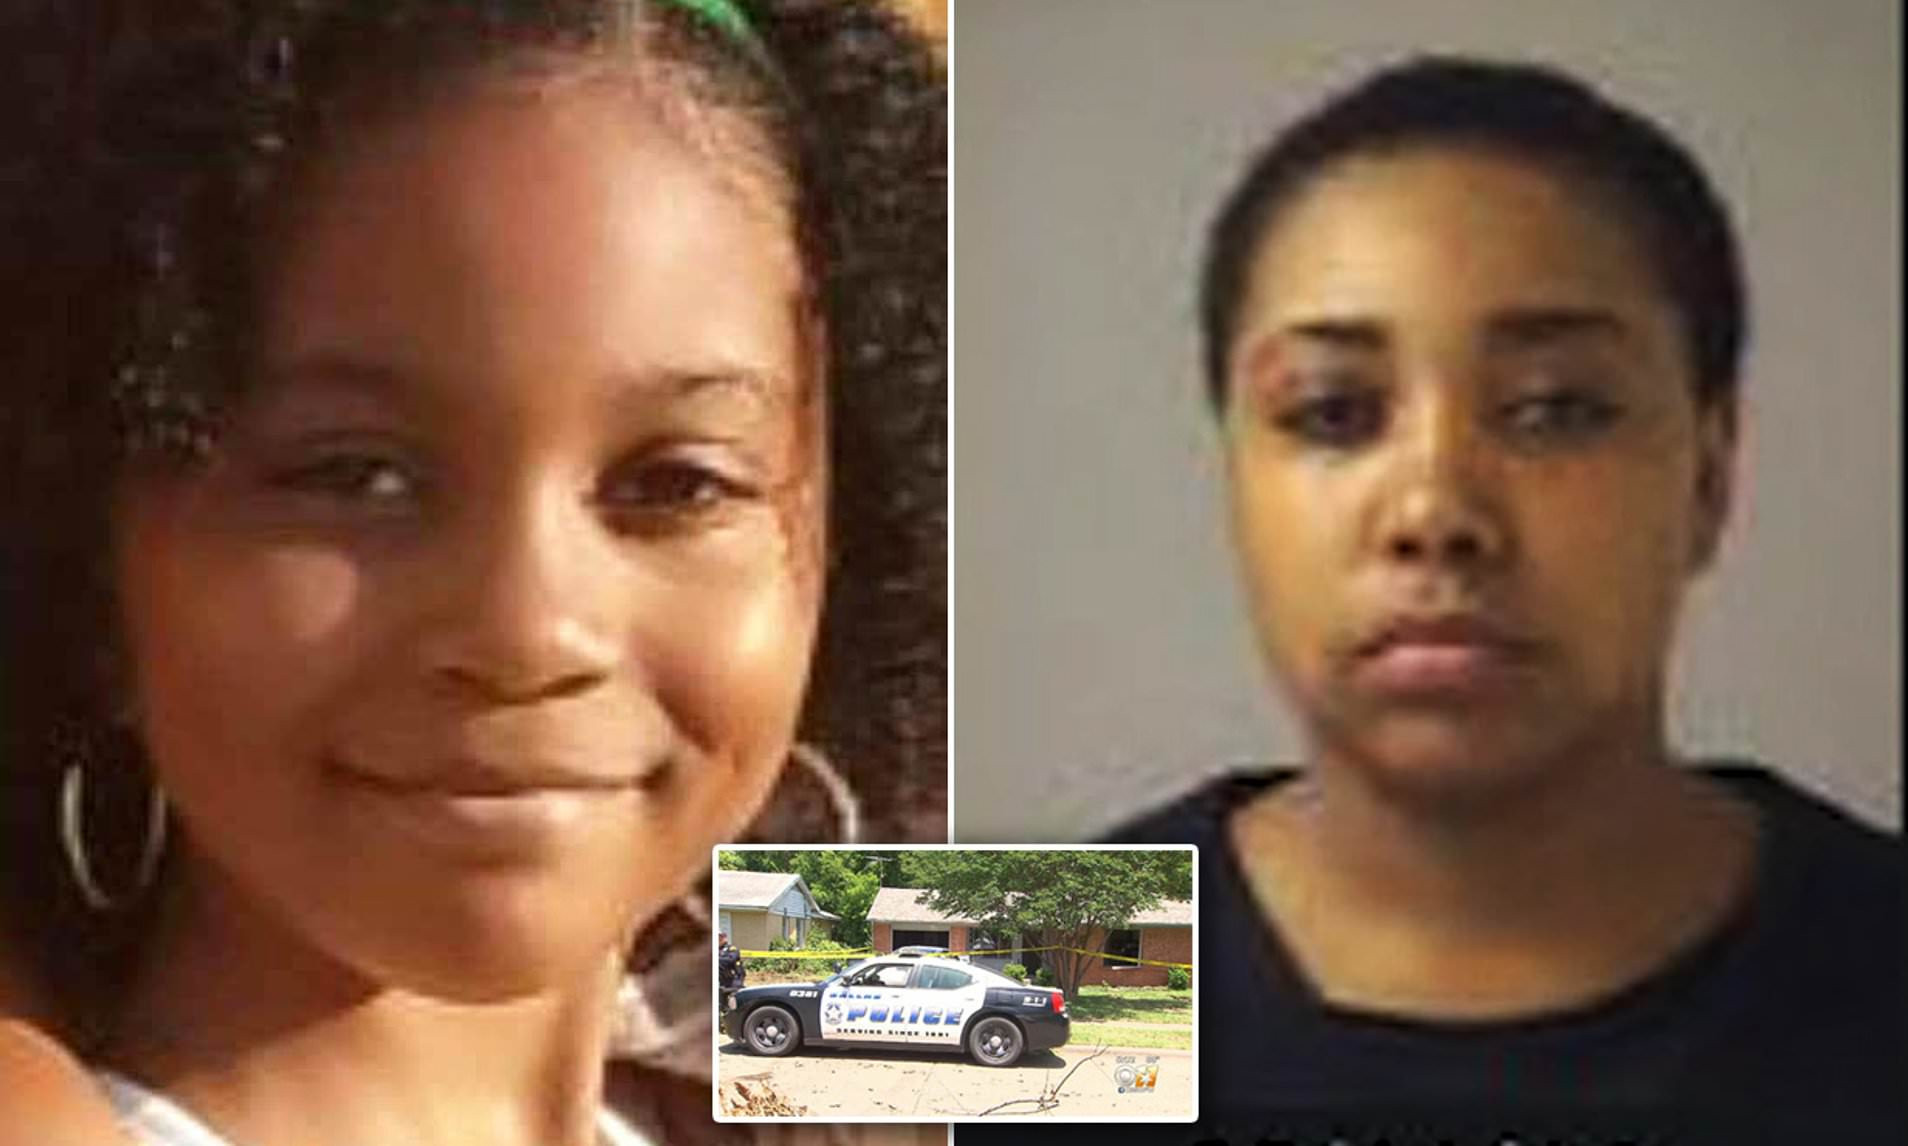 Alexica Stevenson-Gates took her daughter's life before killing herself